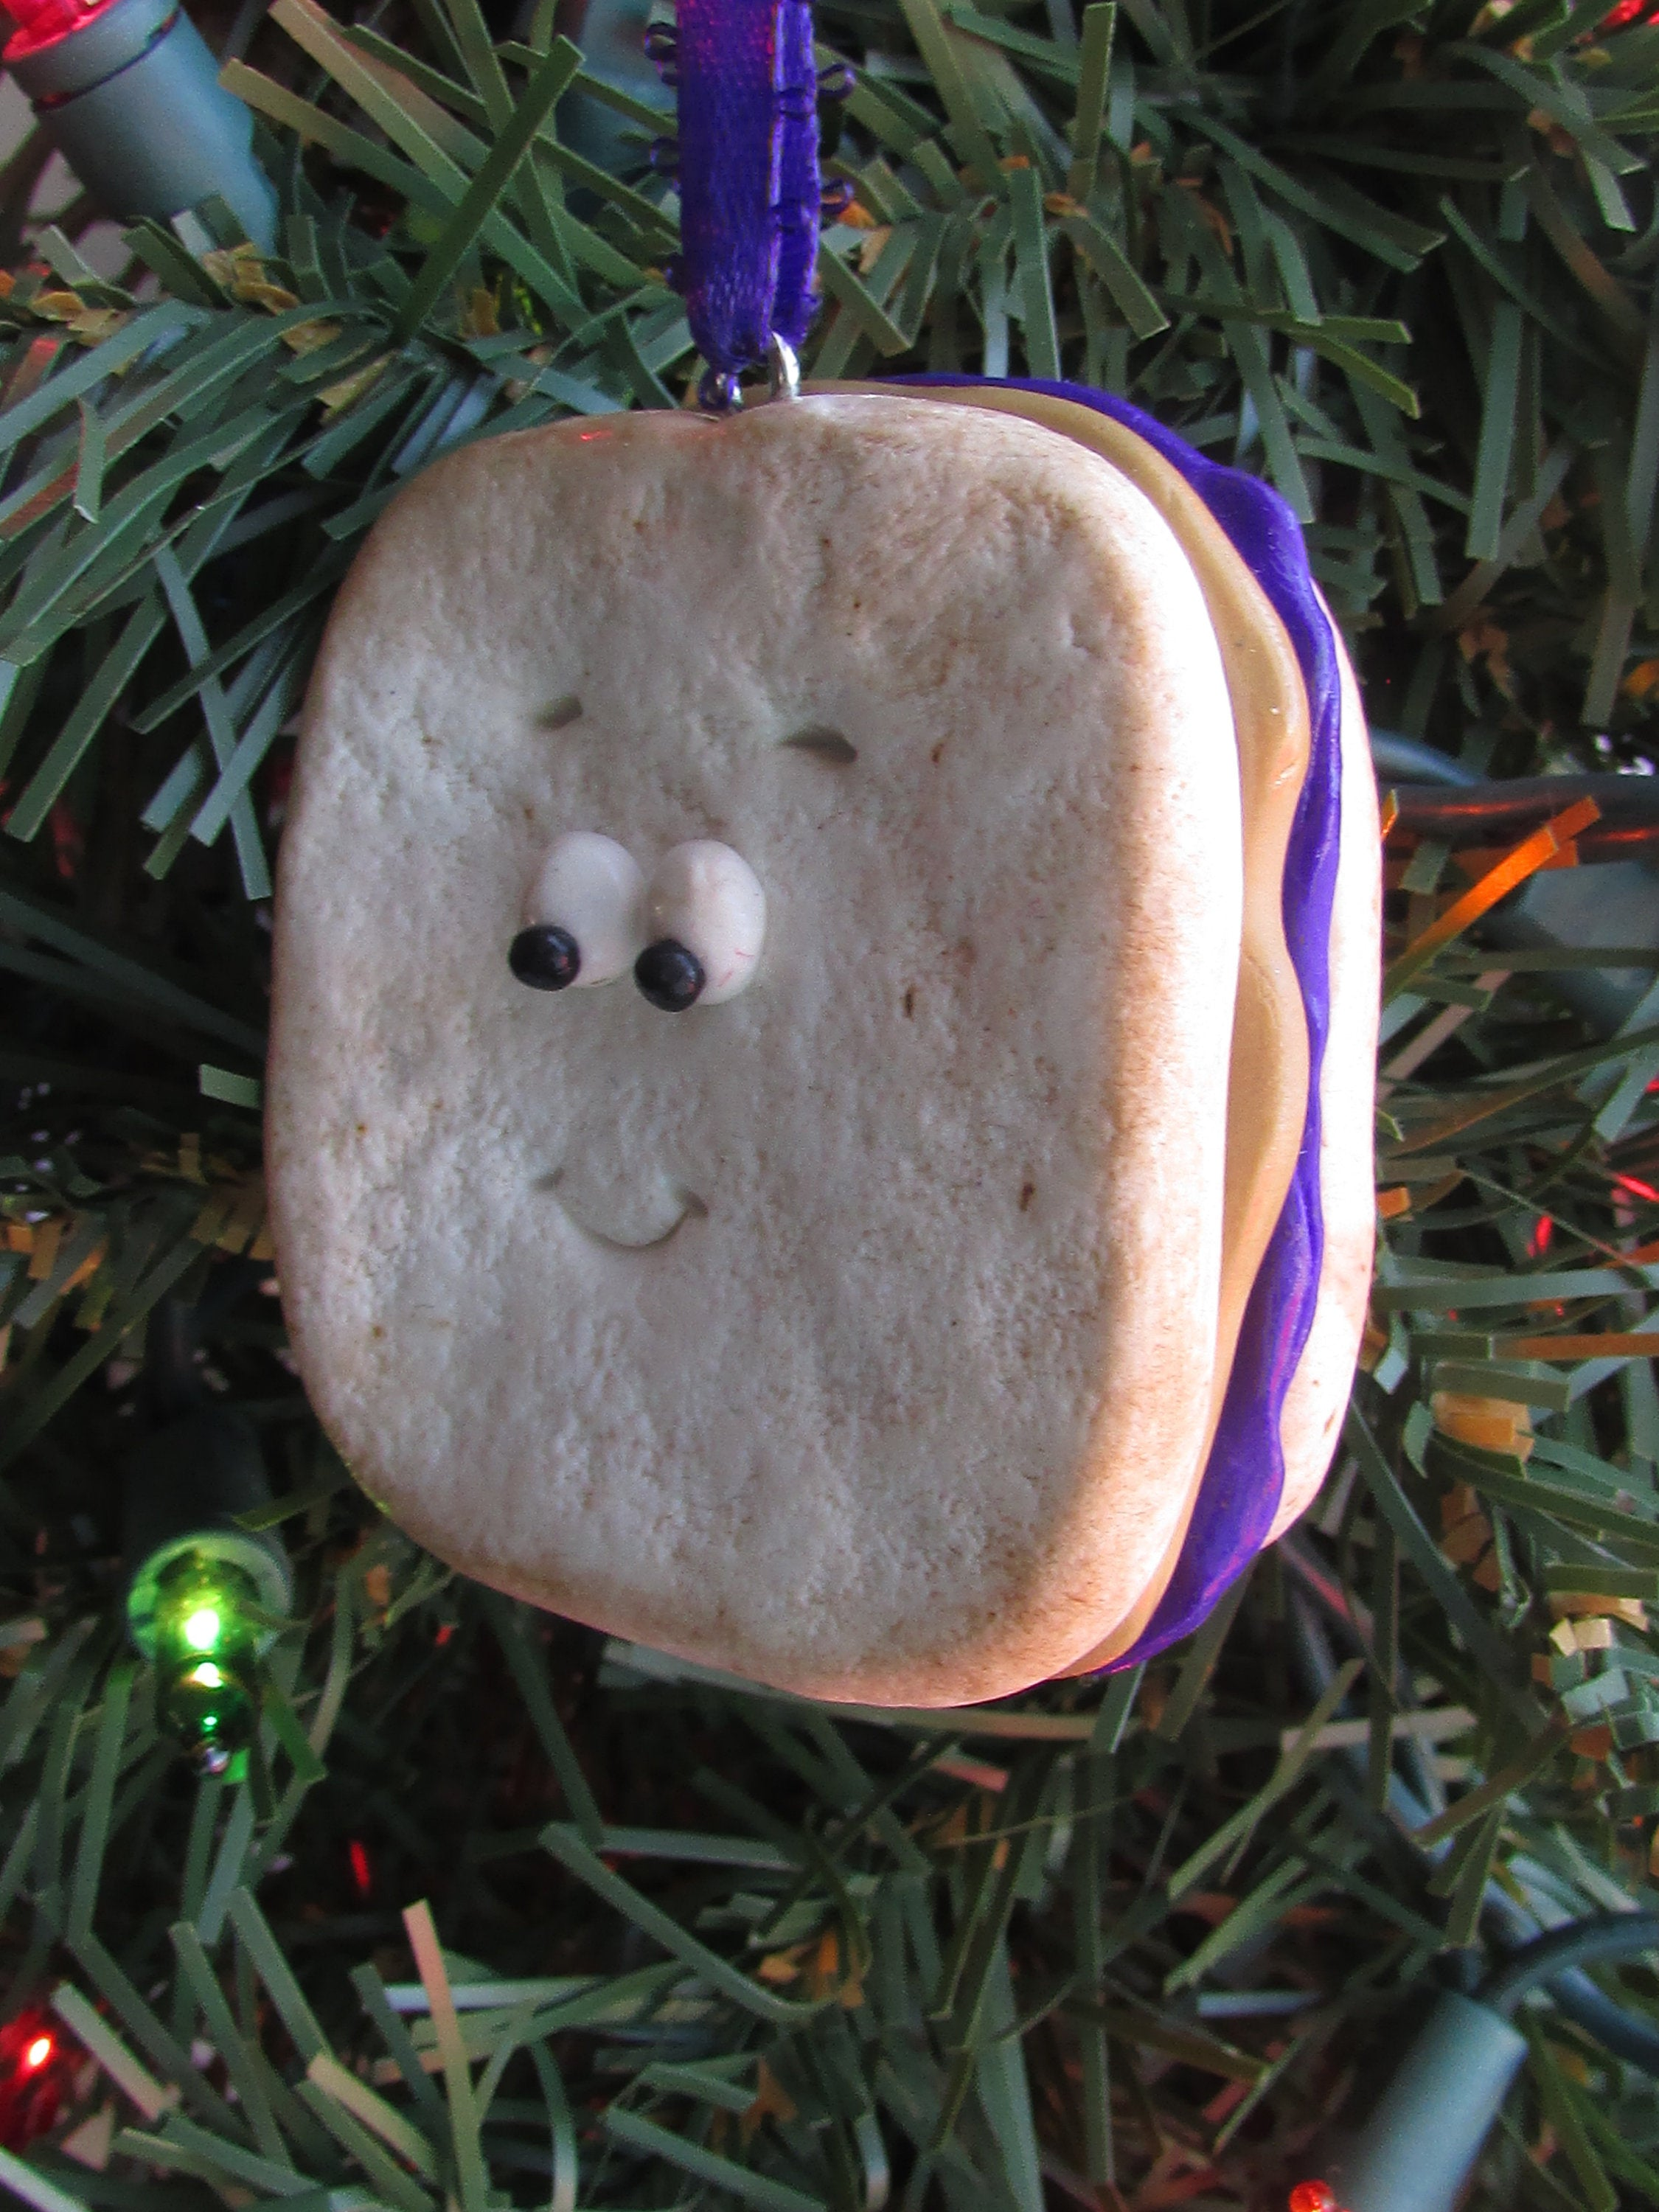 Peanut Butter & Jelly Christmas Ornament Sandwich Ornament Sandwich Charm Funny Food Ornament Food Ornament Funny Food PB and J PBJ Bread